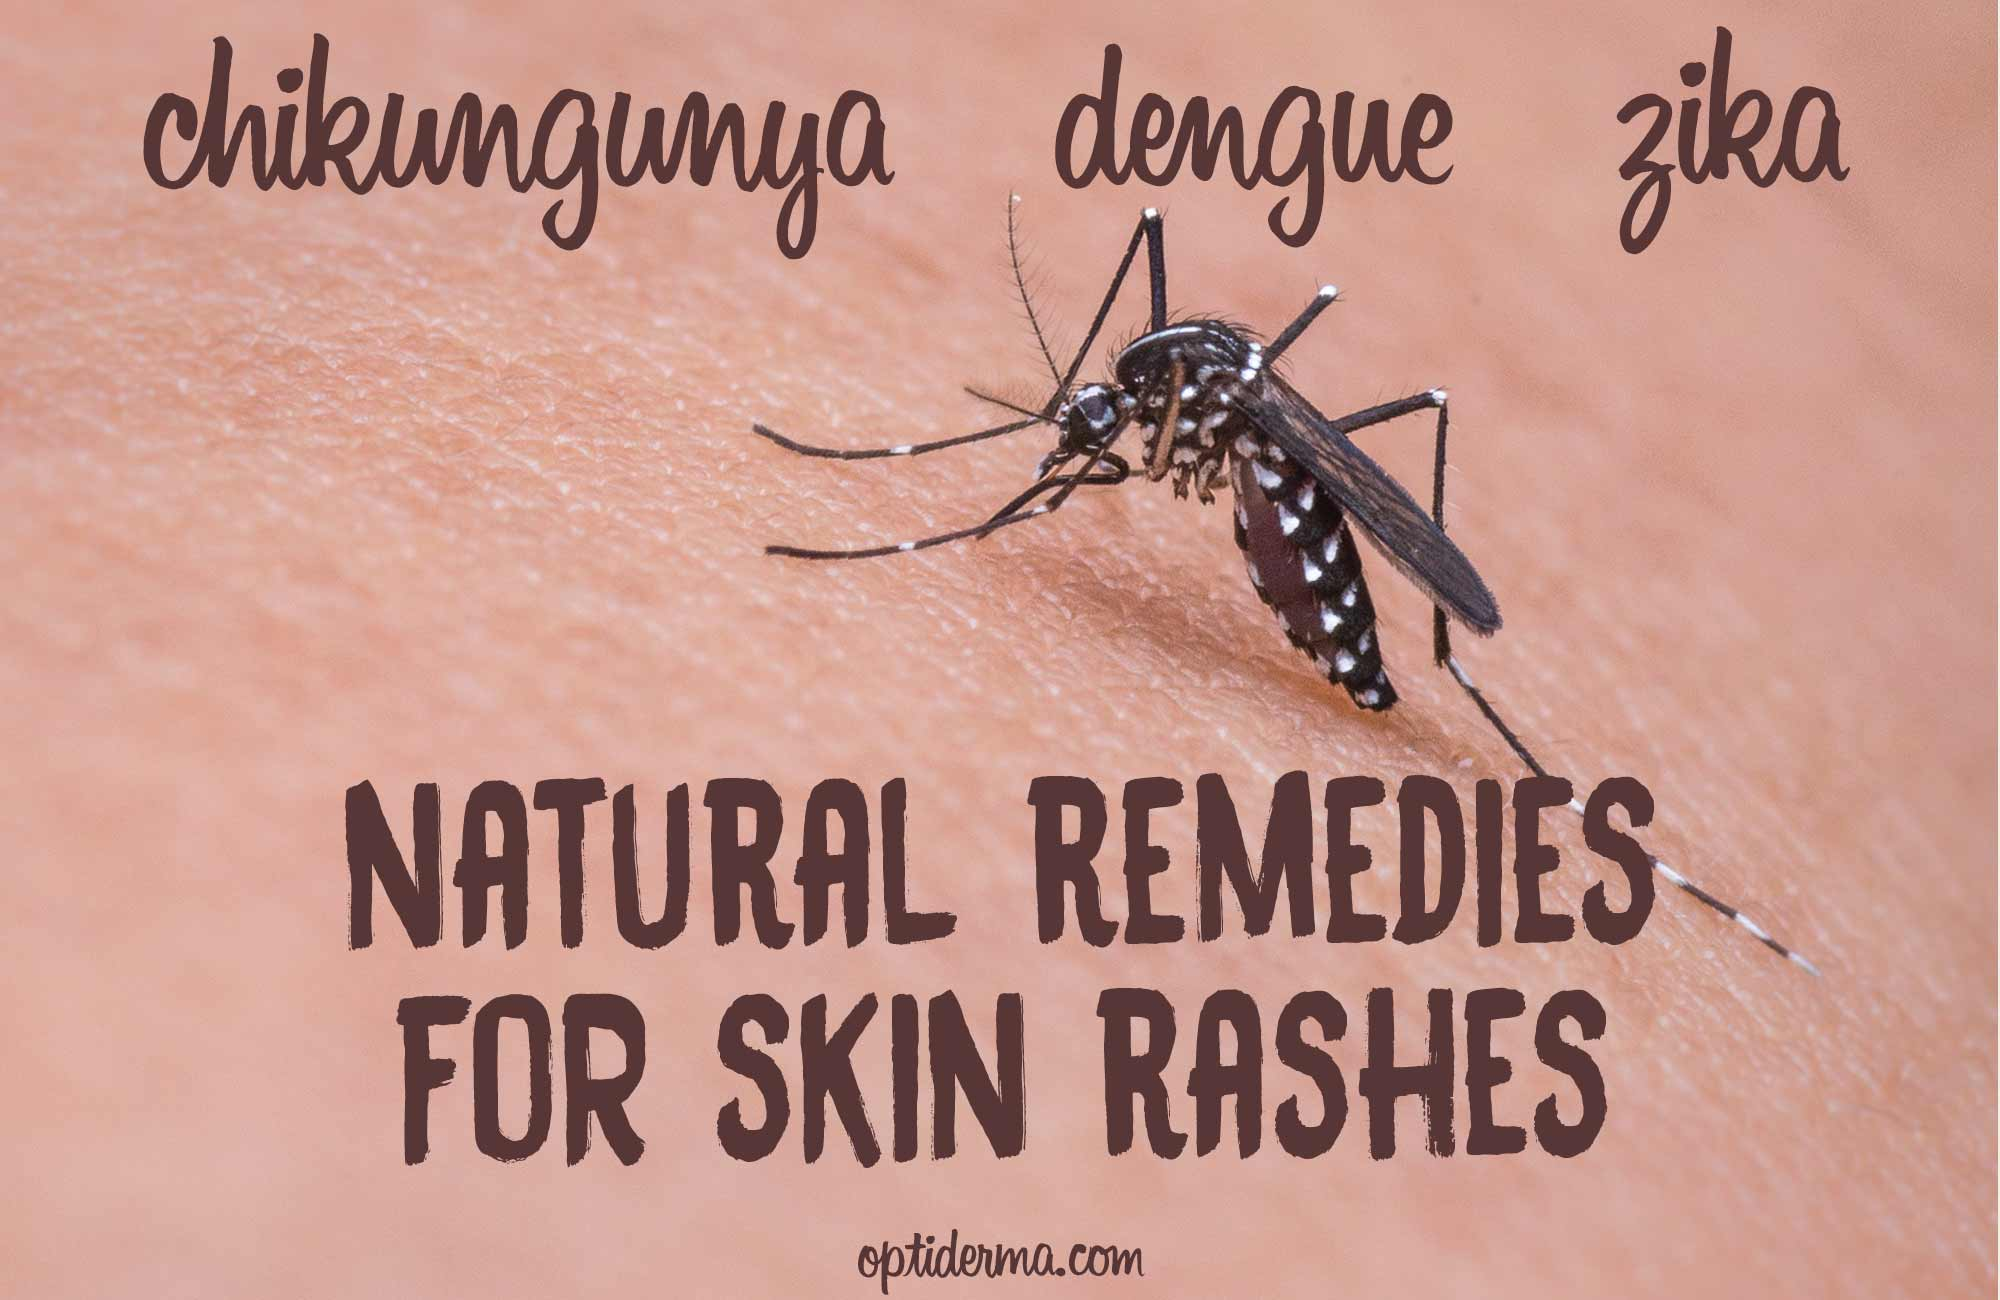 How To Soothe Skin Rashes Caused By Zika Chikungunya Or